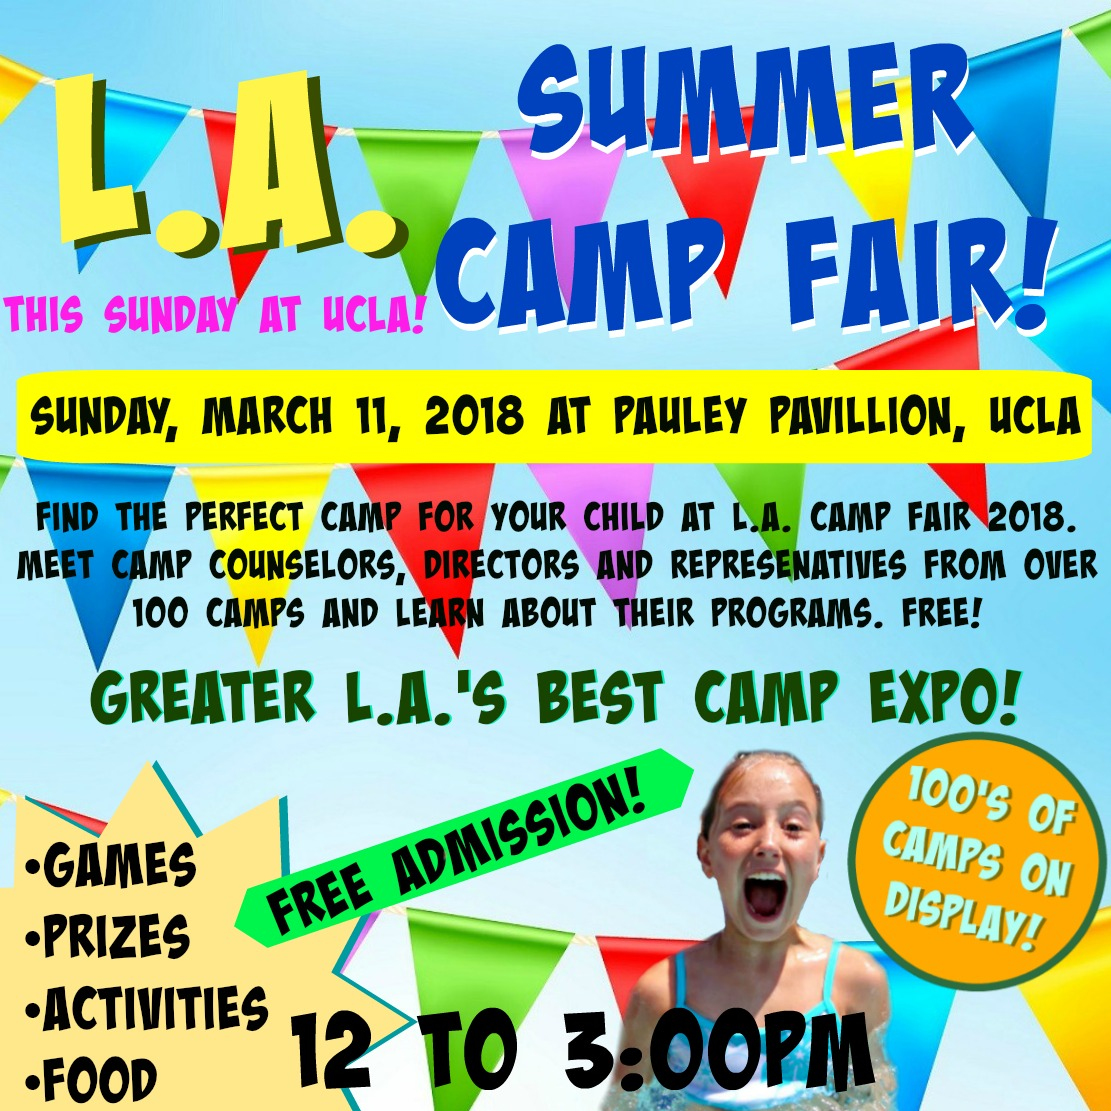 Los Angeles summer camp fair and expo picture at UCLA